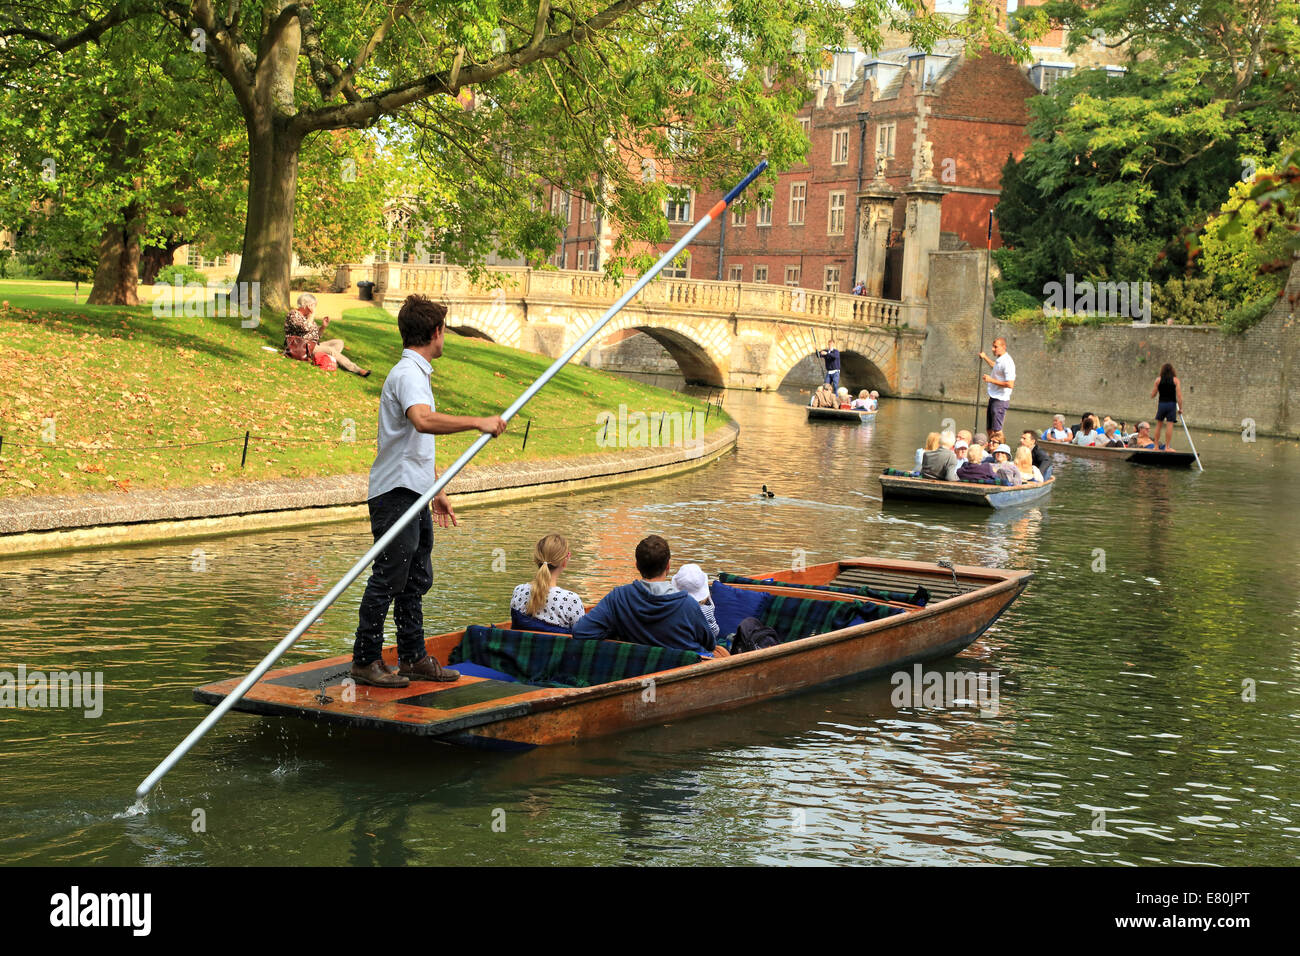 Punting in front of St John's college, Cambridge, UK. - Stock Image